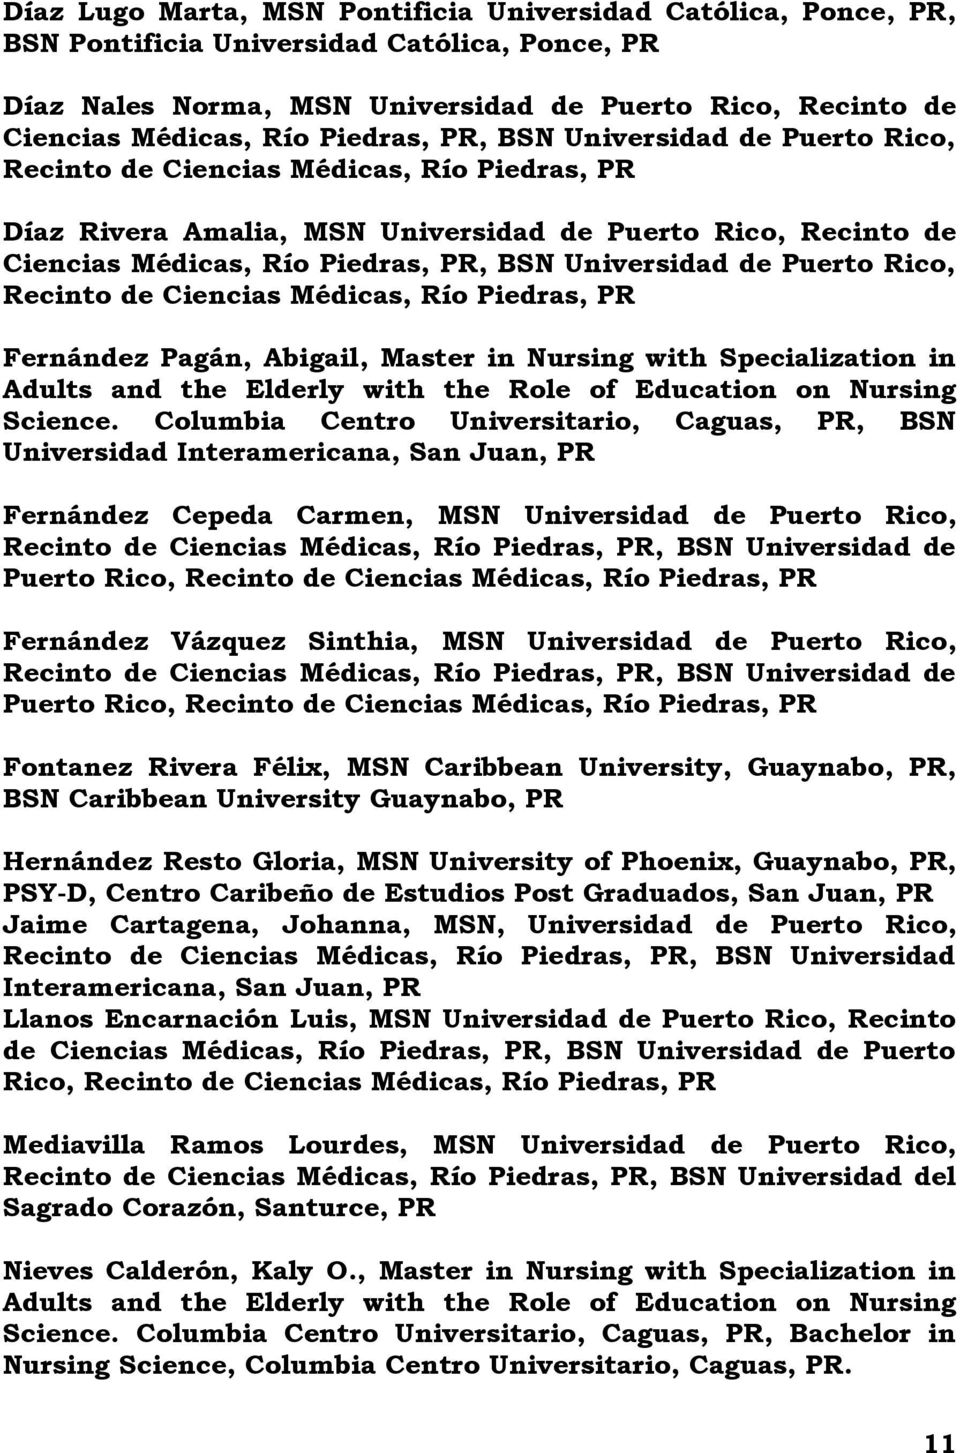 Médicas, Río Fernández Pagán, Abigail, Master in Nursing with Specialization in Adults and the Elderly with the Role of Education on Nursing Science.